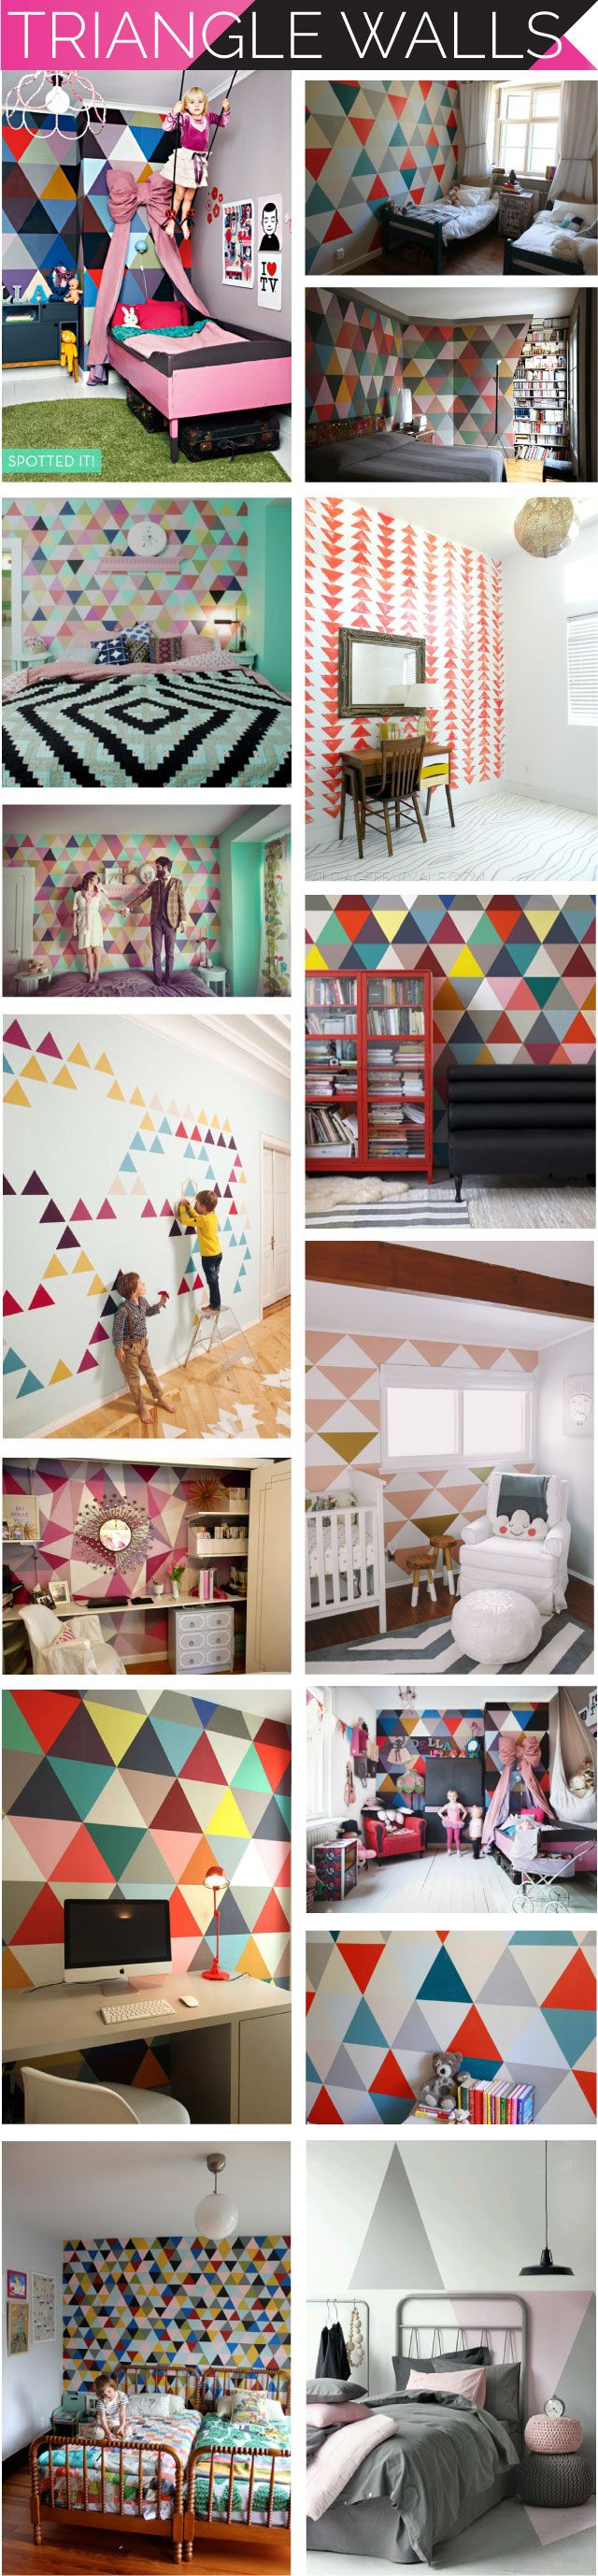 Walls By Design walls by design 121 best inspiration in walls by design Triangle Walls By Jamie Meares Also Love The Gray And White Small Dresser